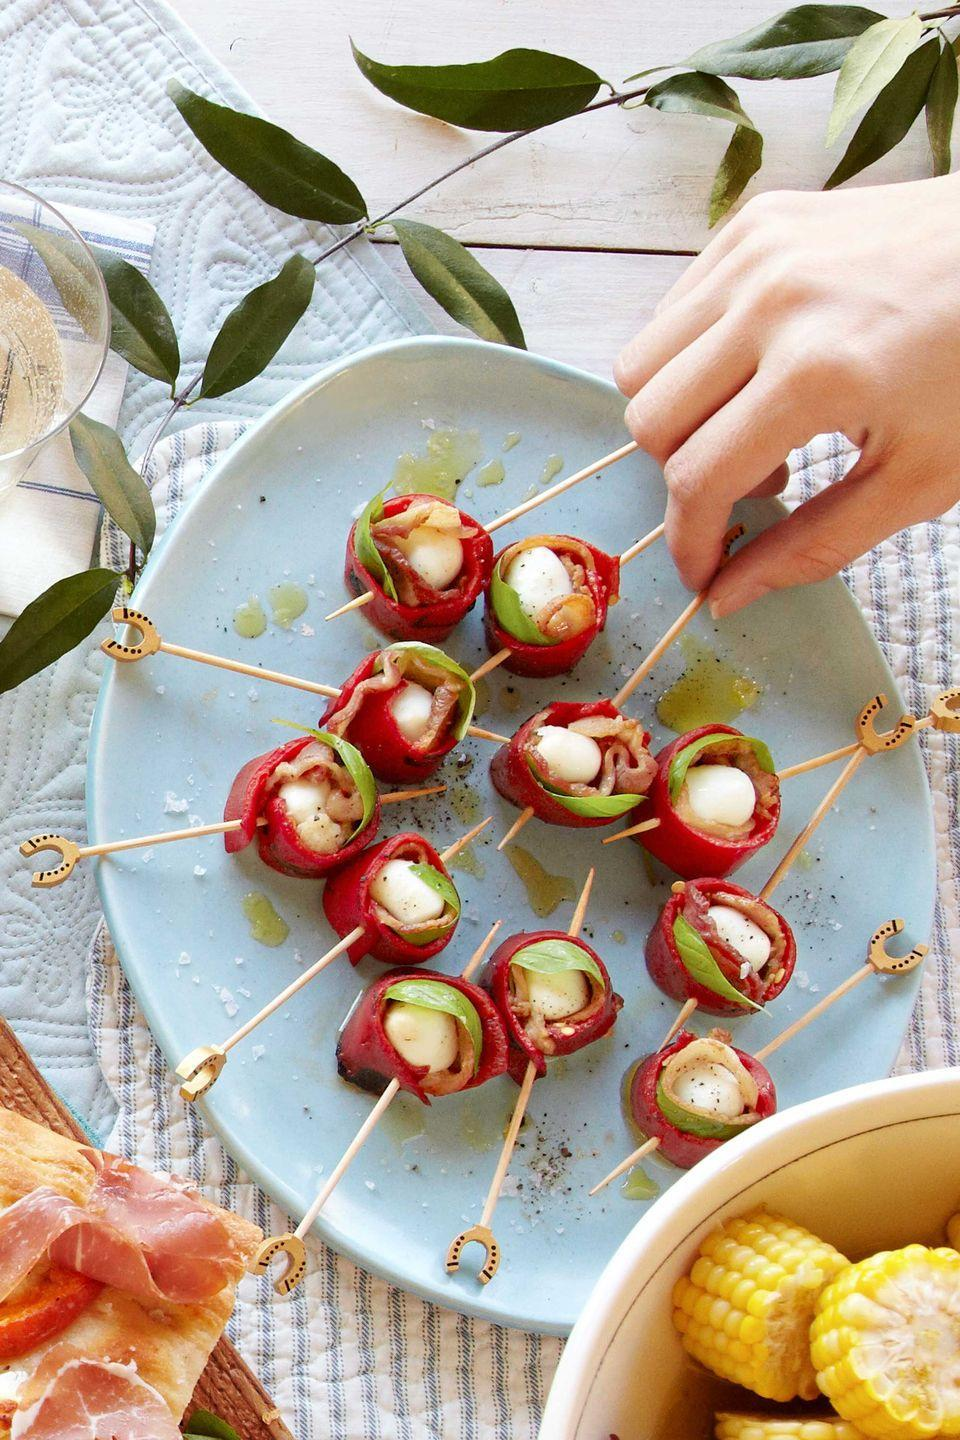 "<p>Bell peppers are low carb—as are bacon and mozzarella—so go ahead and help yourself.</p><p><strong><a href=""https://www.countryliving.com/food-drinks/recipes/a38084/mozzarella-red-pepper-bacon-skewers-recipe/"" rel=""nofollow noopener"" target=""_blank"" data-ylk=""slk:Get the recipe"" class=""link rapid-noclick-resp"">Get the recipe</a>.</strong></p><p><strong><a class=""link rapid-noclick-resp"" href=""https://www.amazon.com/Appetiser-Cocktail-Chocolate-Fountain-Barbecue/dp/B07MY7W5LJ/?tag=syn-yahoo-20&ascsubtag=%5Bartid%7C10050.g.35131635%5Bsrc%7Cyahoo-us"" rel=""nofollow noopener"" target=""_blank"" data-ylk=""slk:SHOP SKEWERS"">SHOP SKEWERS</a><br></strong></p>"